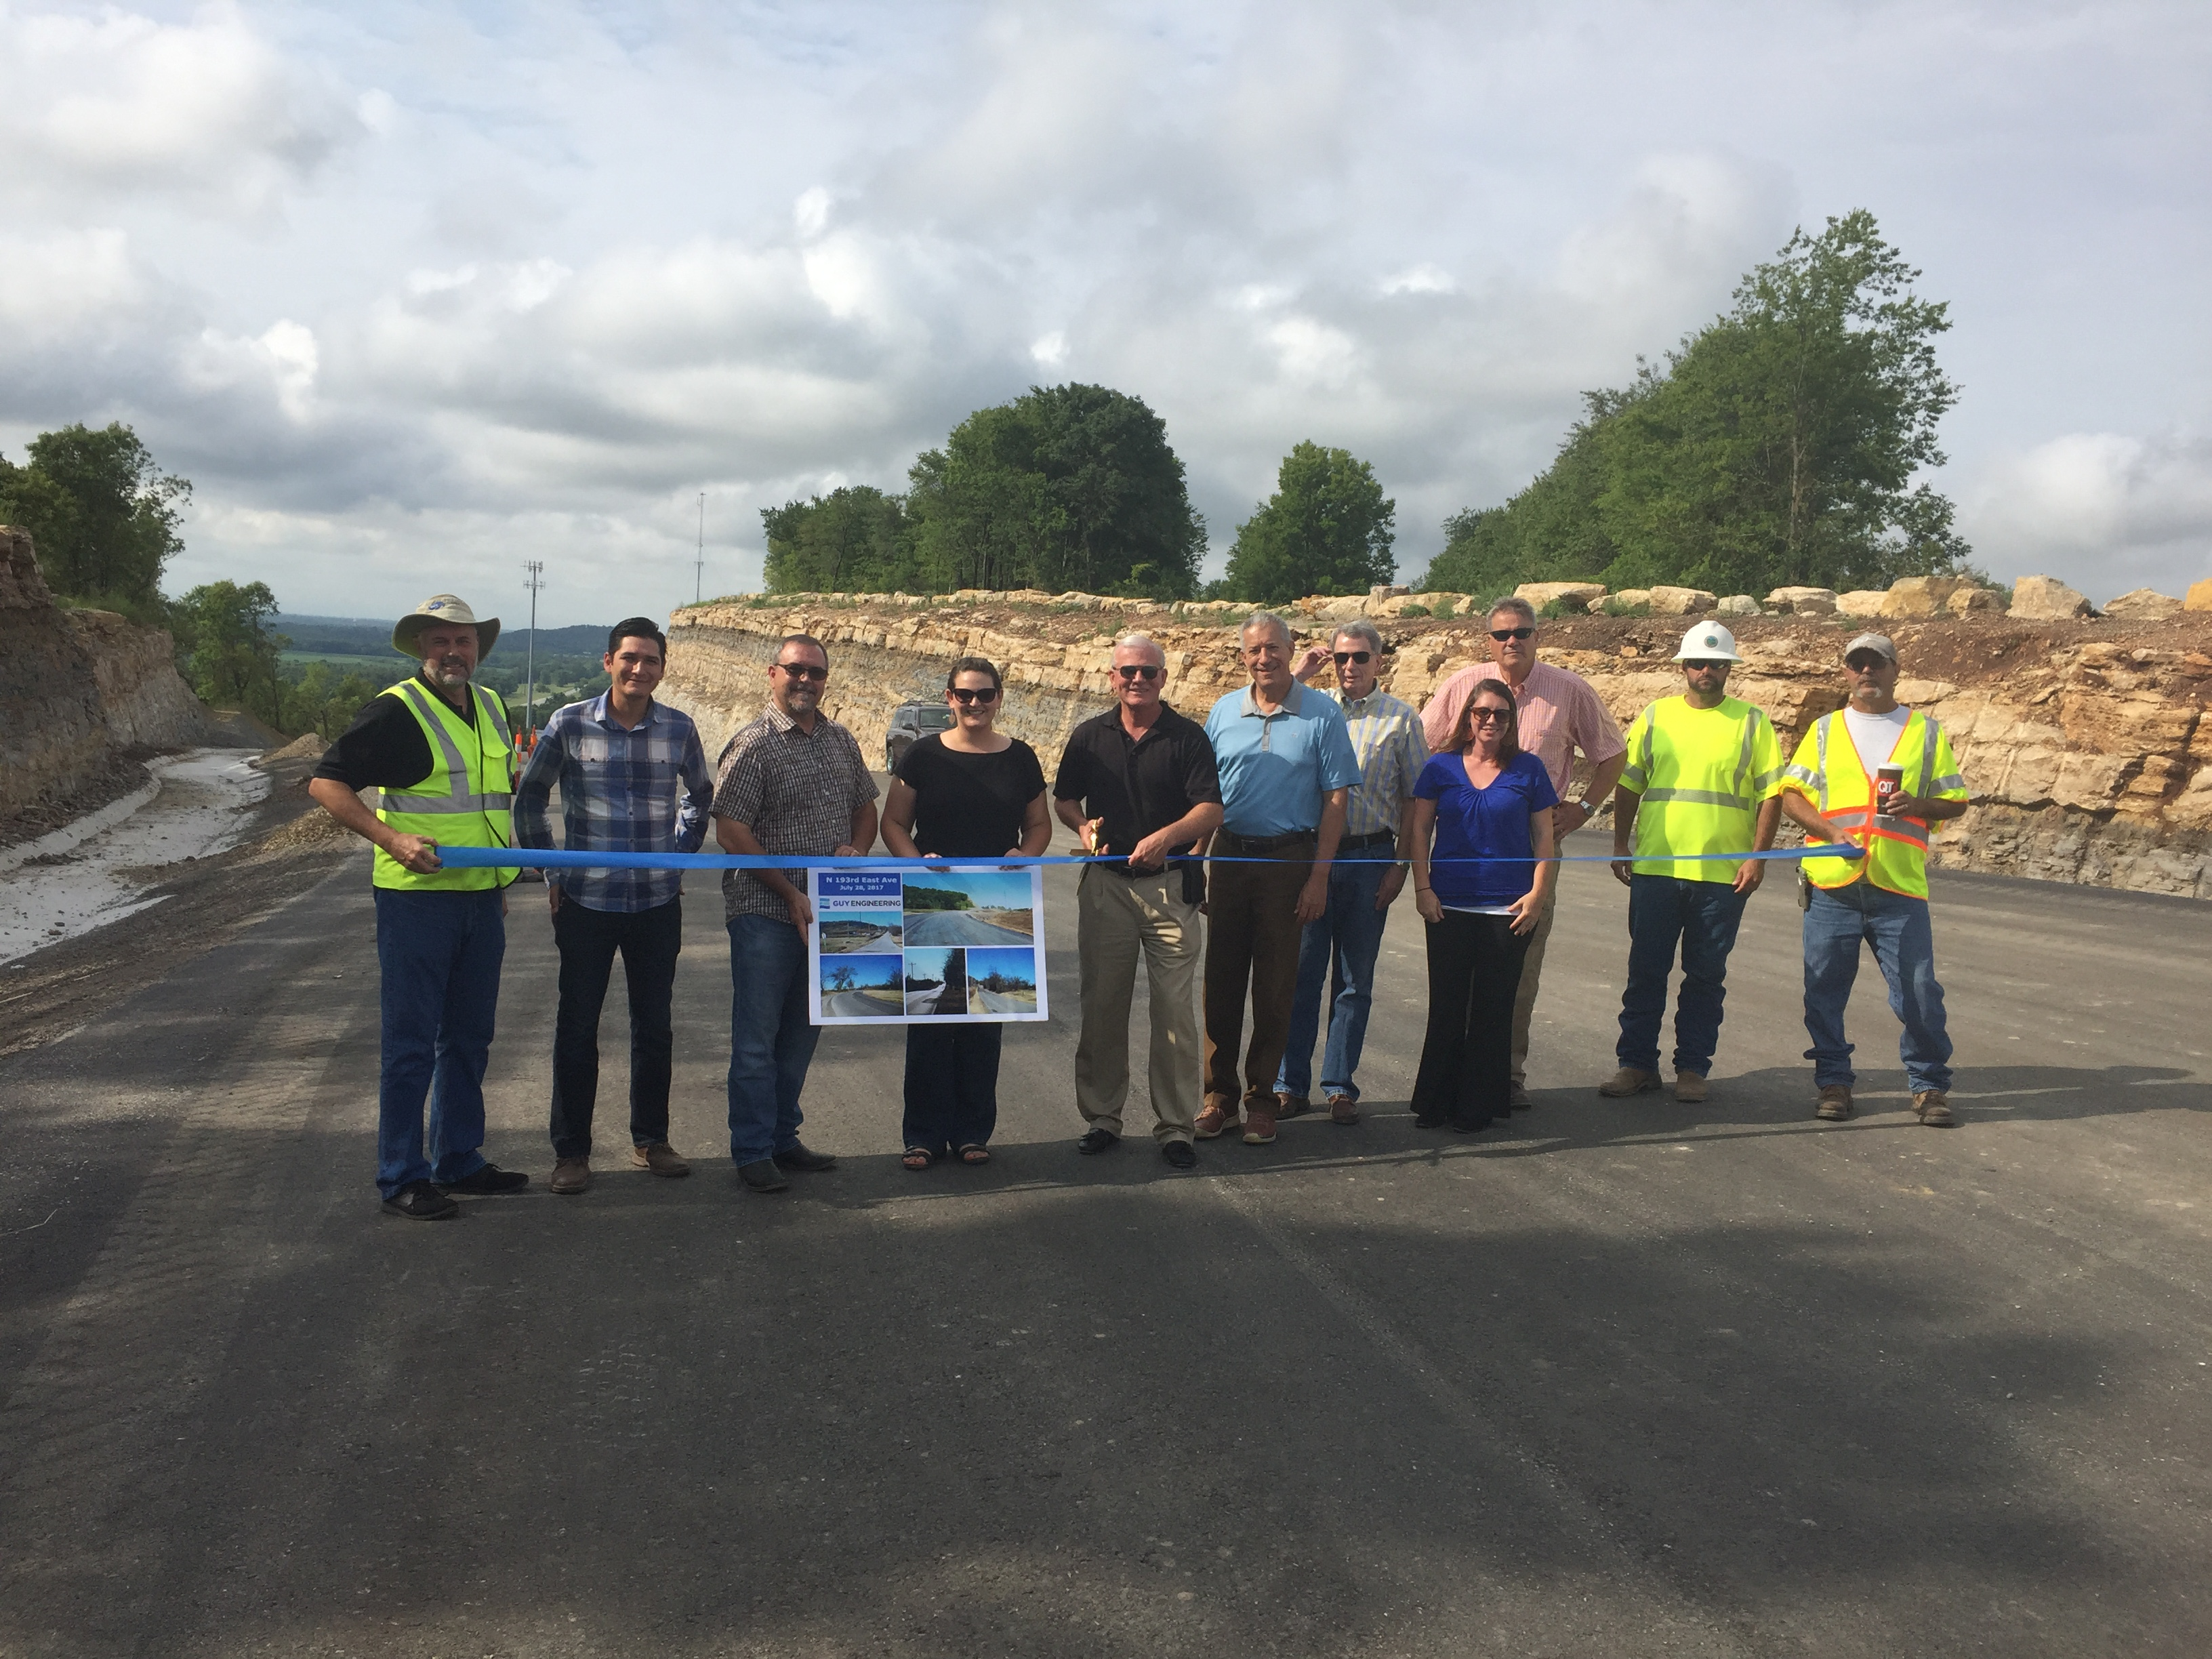 Ribbon Cutting Held for N 193rd East Ave